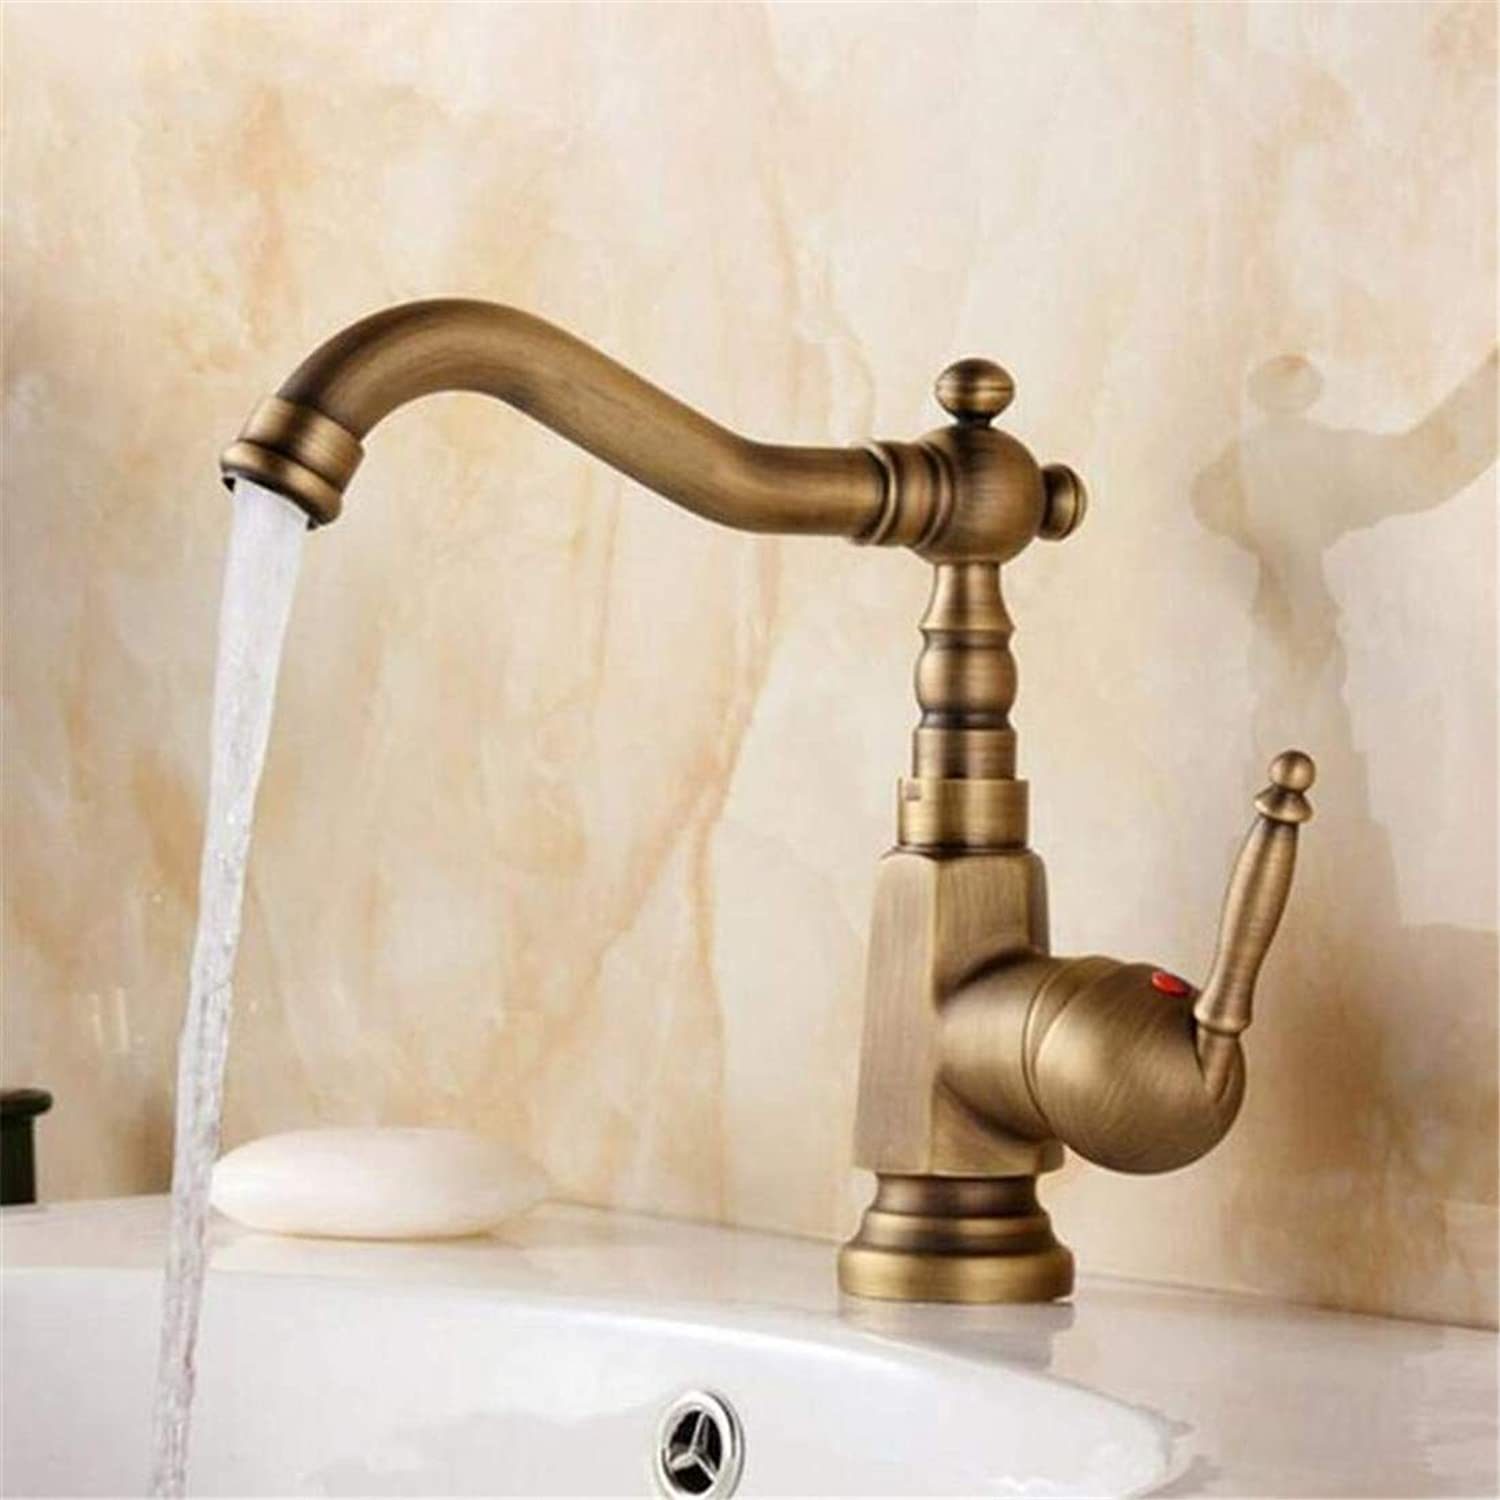 Faucet Retro Kitchen Bathroom Faucet Faucet Washbasin Mixer 360 Degree redating Single Handle Bathroom Faucet Antique Brass Hot and Cold Water Tap